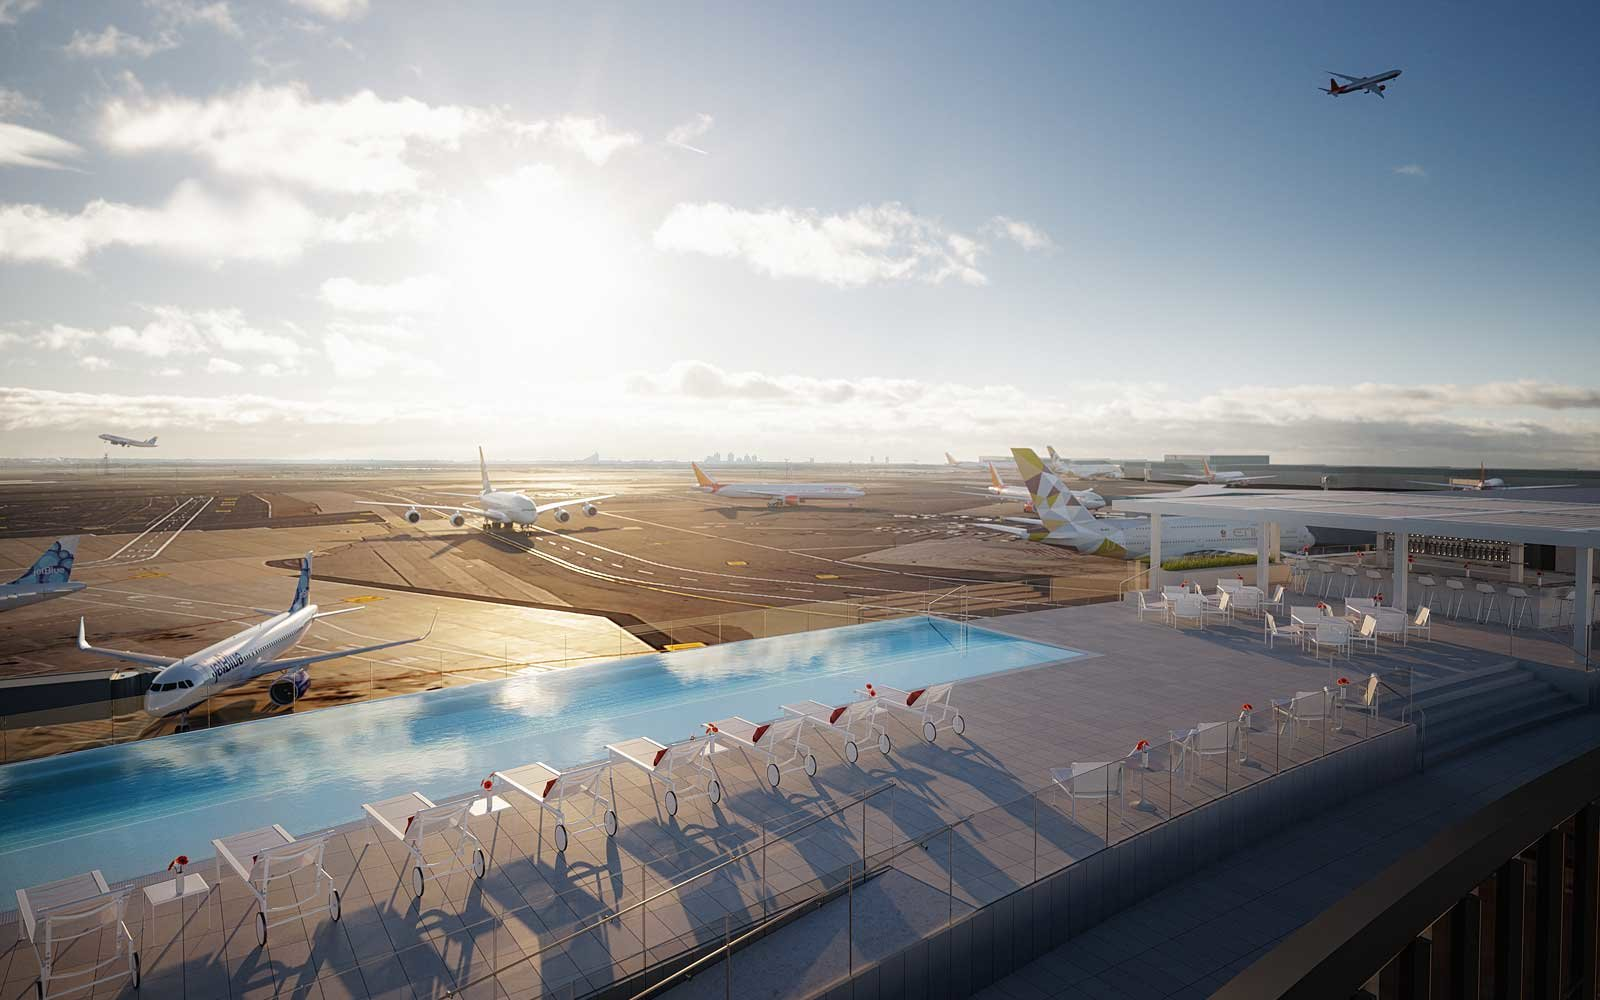 NYC's Most Unbelievable Rooftop Pool Is Opening at the Airport This Summer